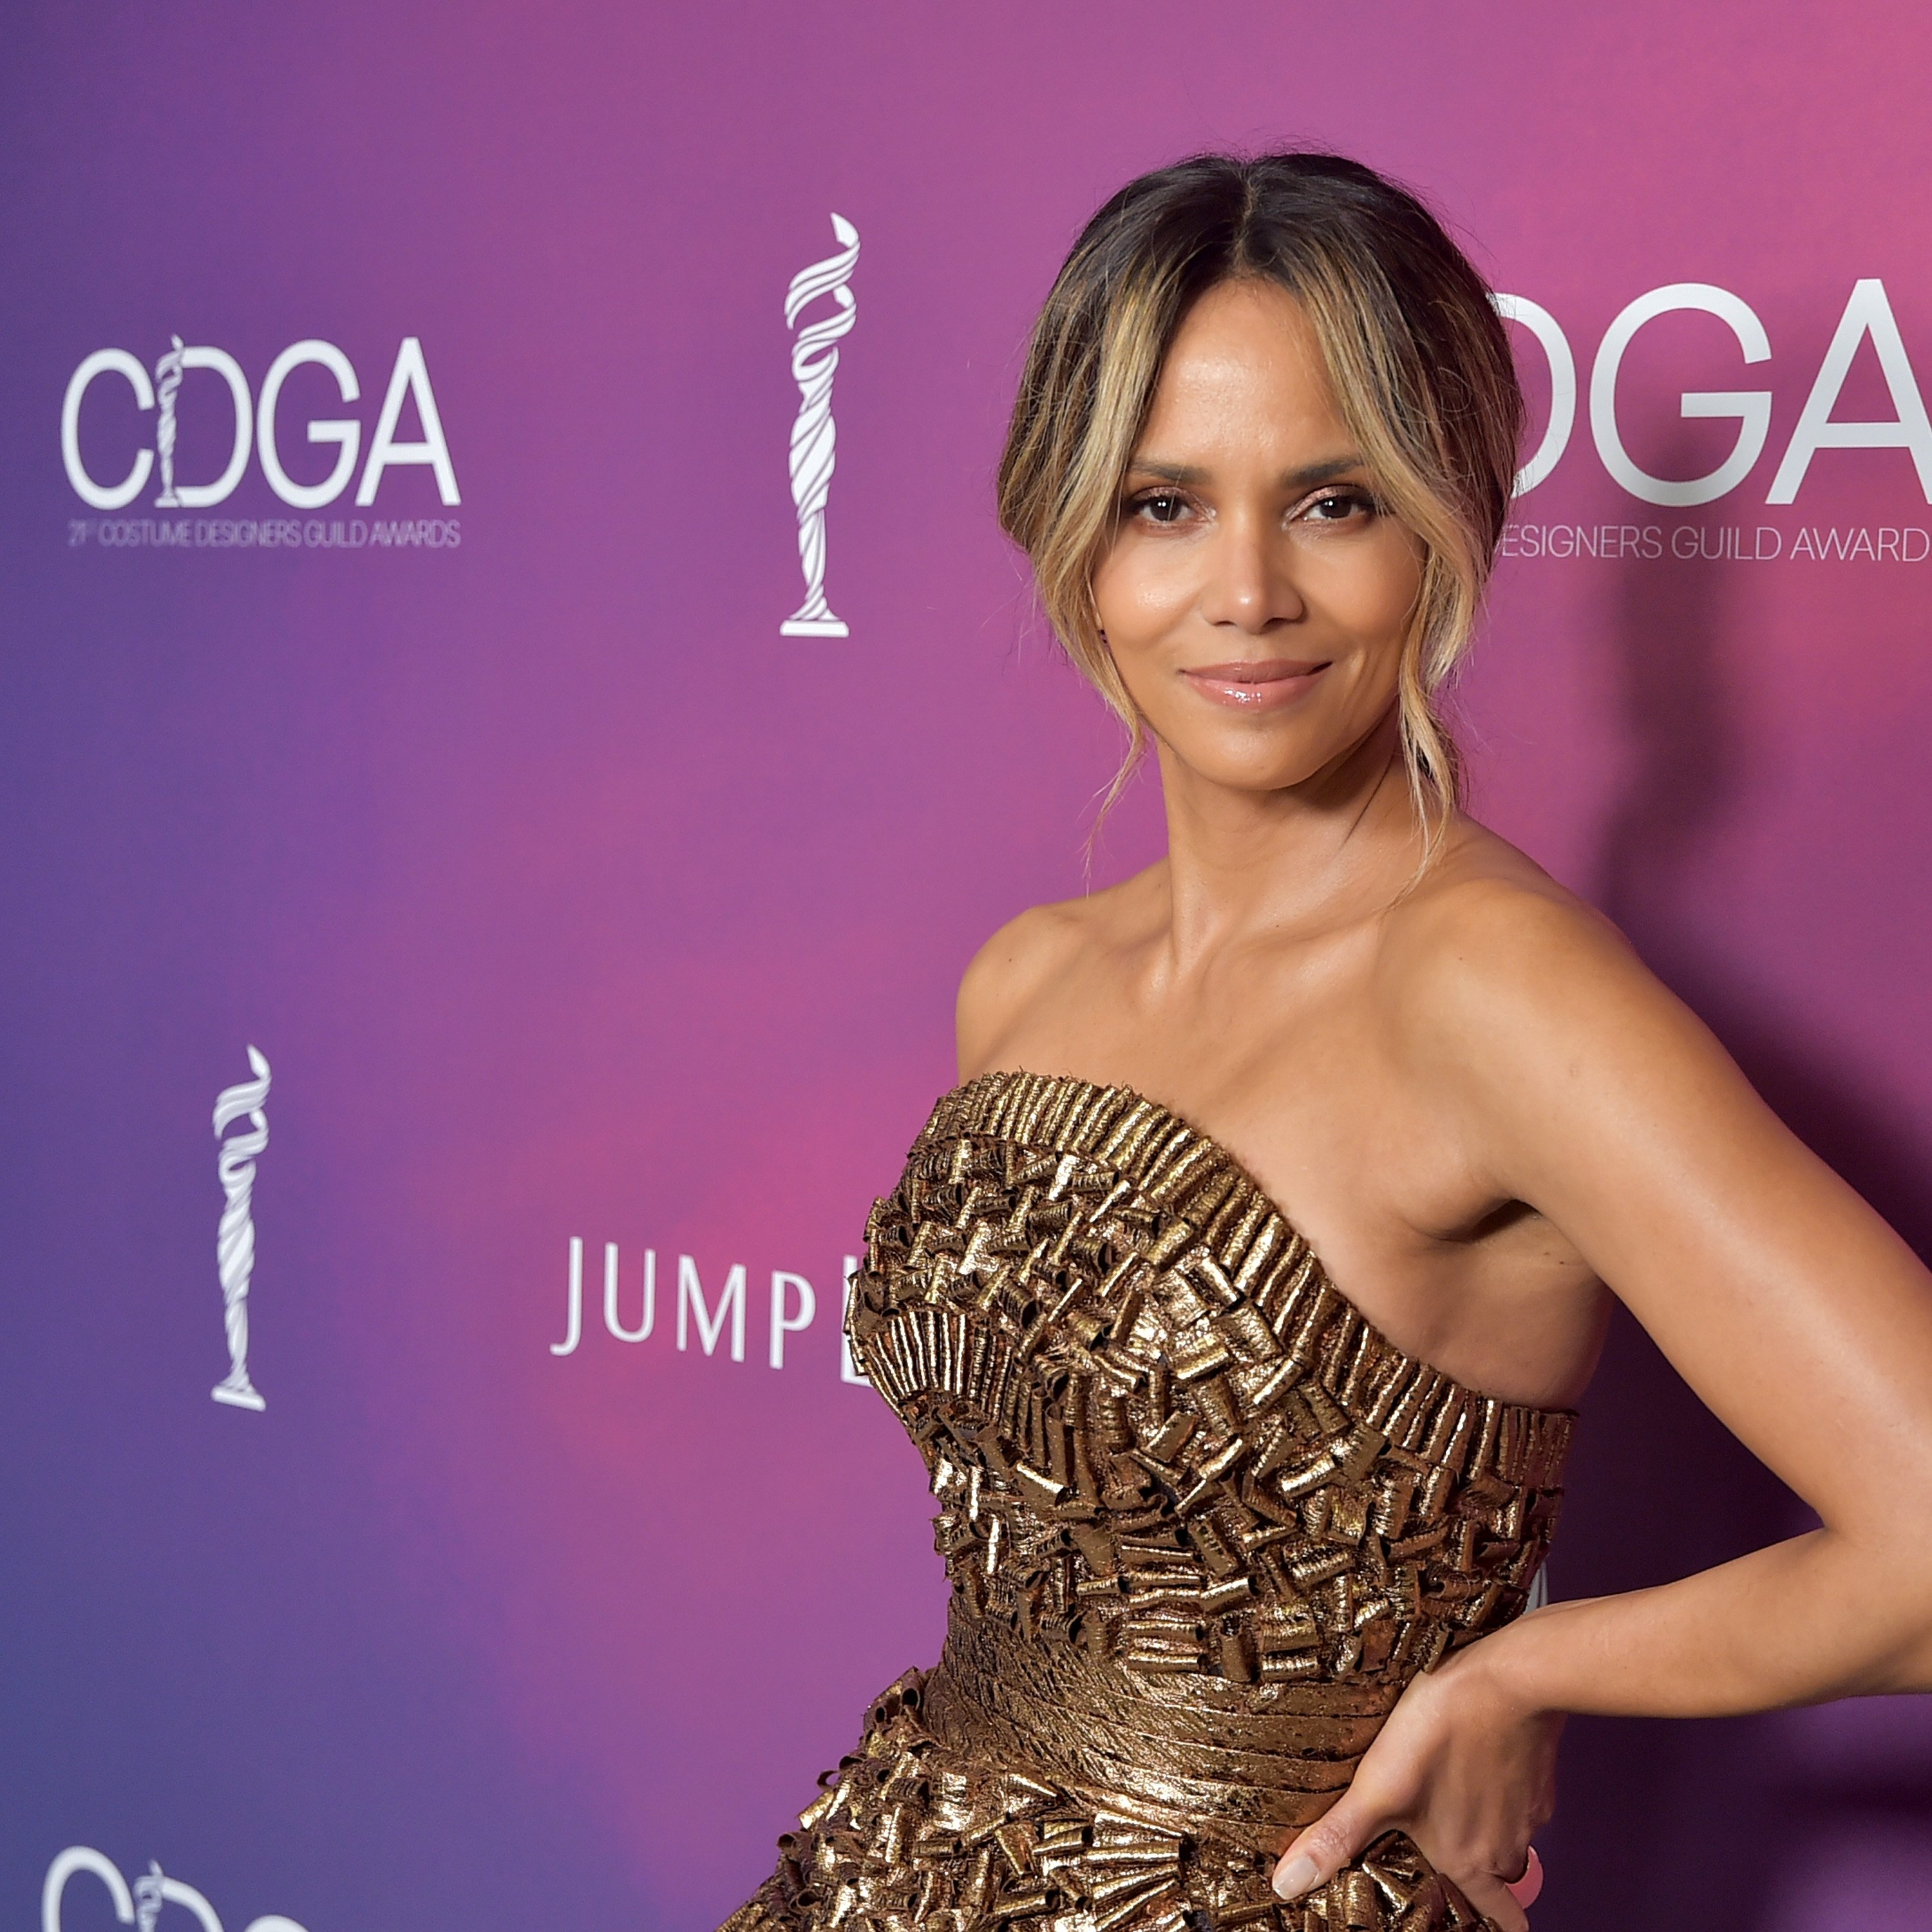 Halle Berry at The 21st CDGA (Costume Designers Guild Awards) on Feb. 19, 2019 in California | Photo: Getty Images